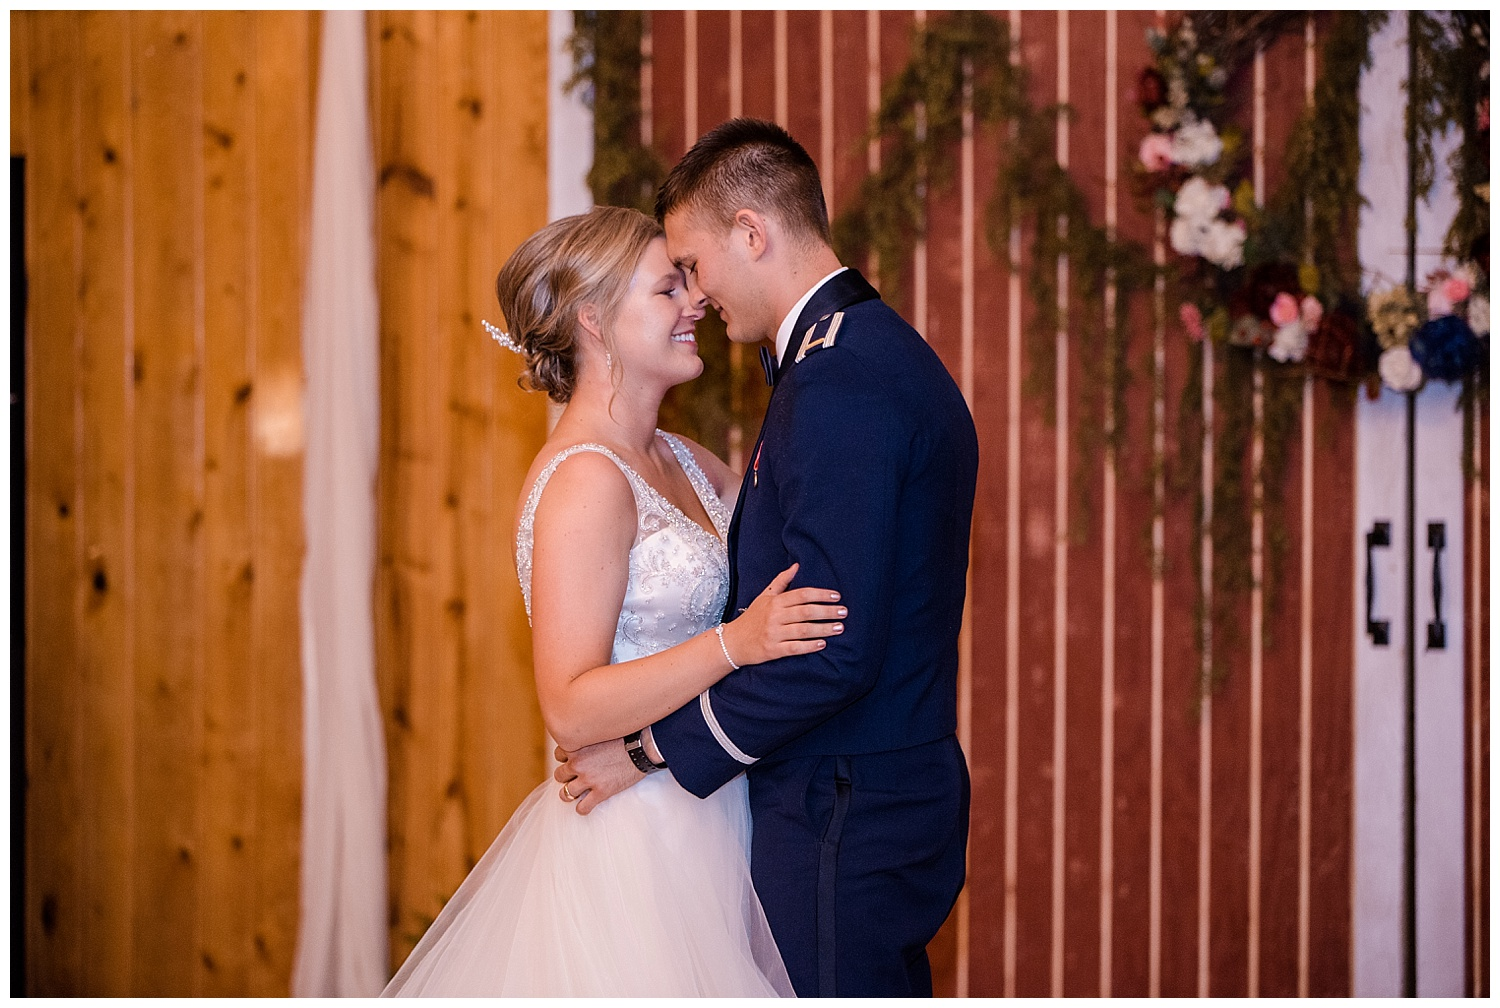 Military Wedding, wedding reception guest photos, smiling bride, first dance, Colorado Wedding Photographer, Denver Wedding Photographer, Denver Elopement Photographer, Colorado Elopement Photographer, Rocky Mountain Wedding Photographer, Downtown Denver Photographer, colorado springs wedding photographer